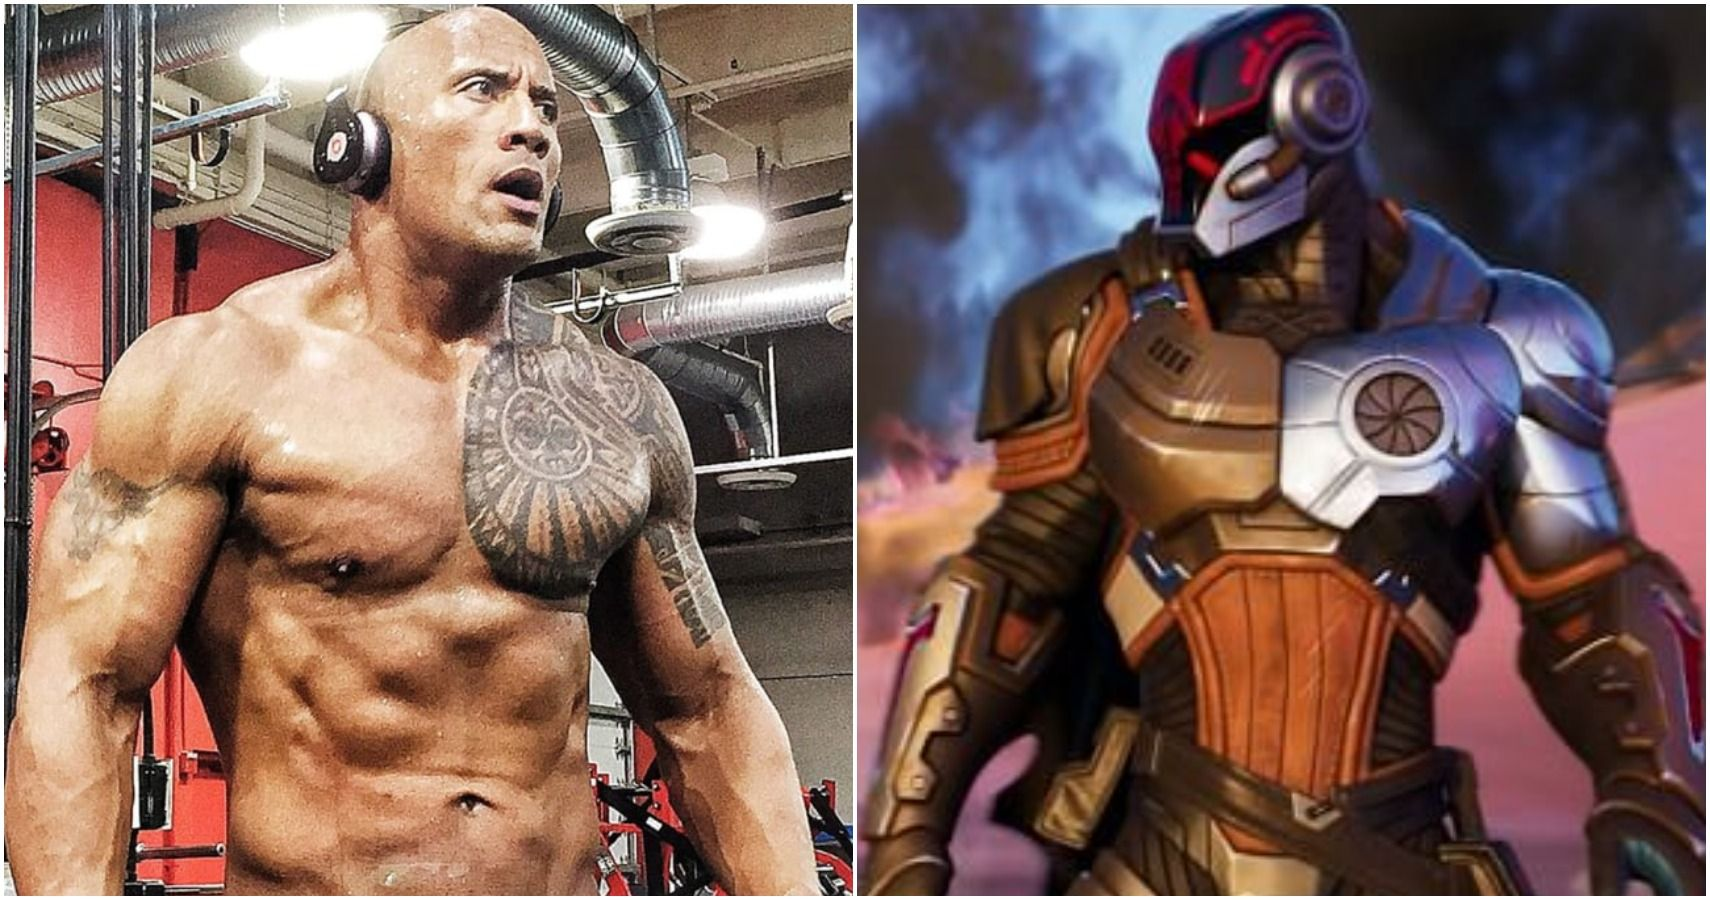 I Do Voices Fortnite Fortnite Is The Rock The Voice Of The Foundation